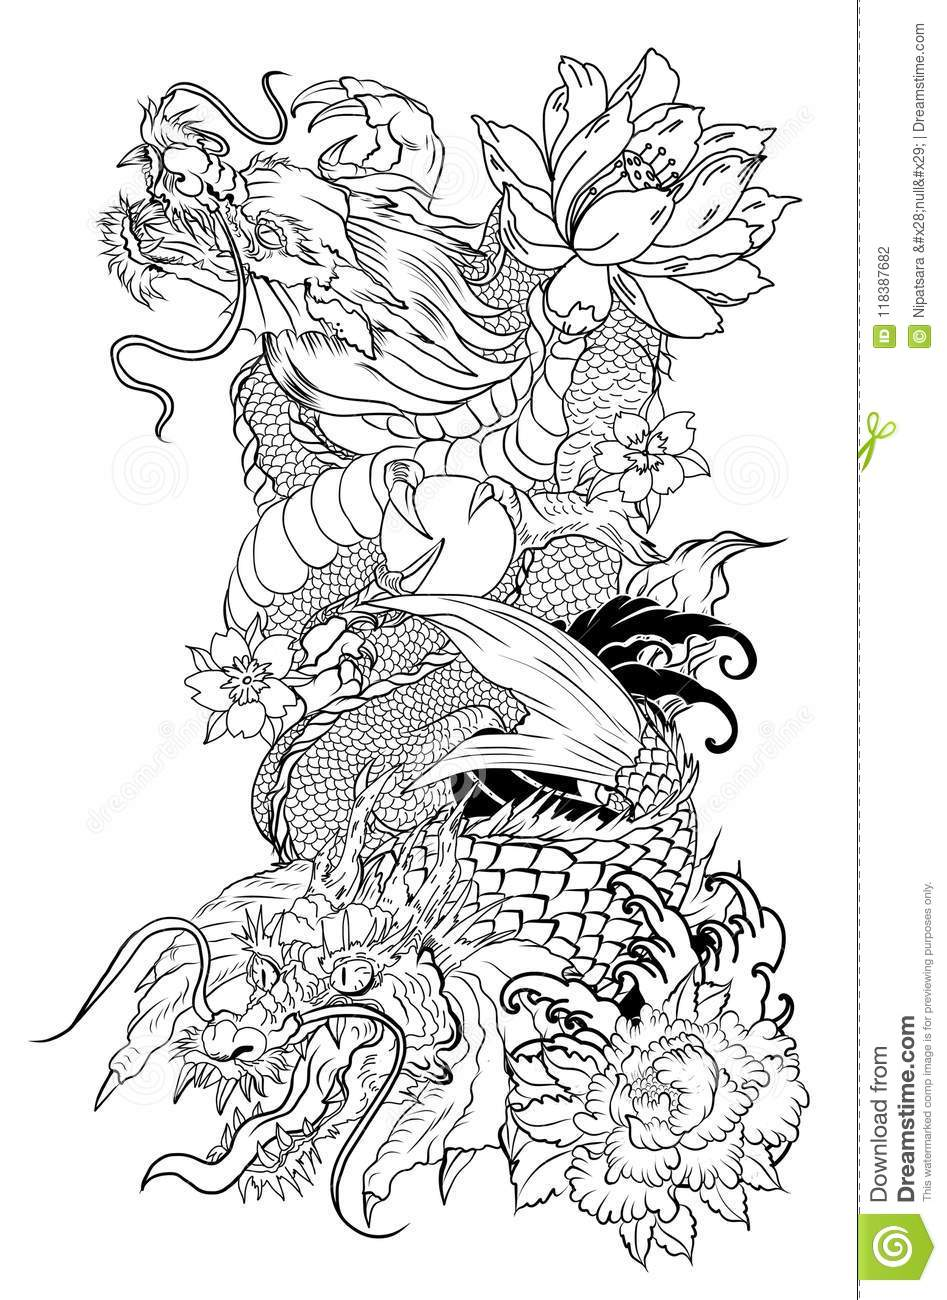 Dragon With Koi Dragon And Lotus Flower Tattoo Peach With Sakura And Plum Flower On Cloud Background Stock Vector Illustration Of Drawing Line 118387682